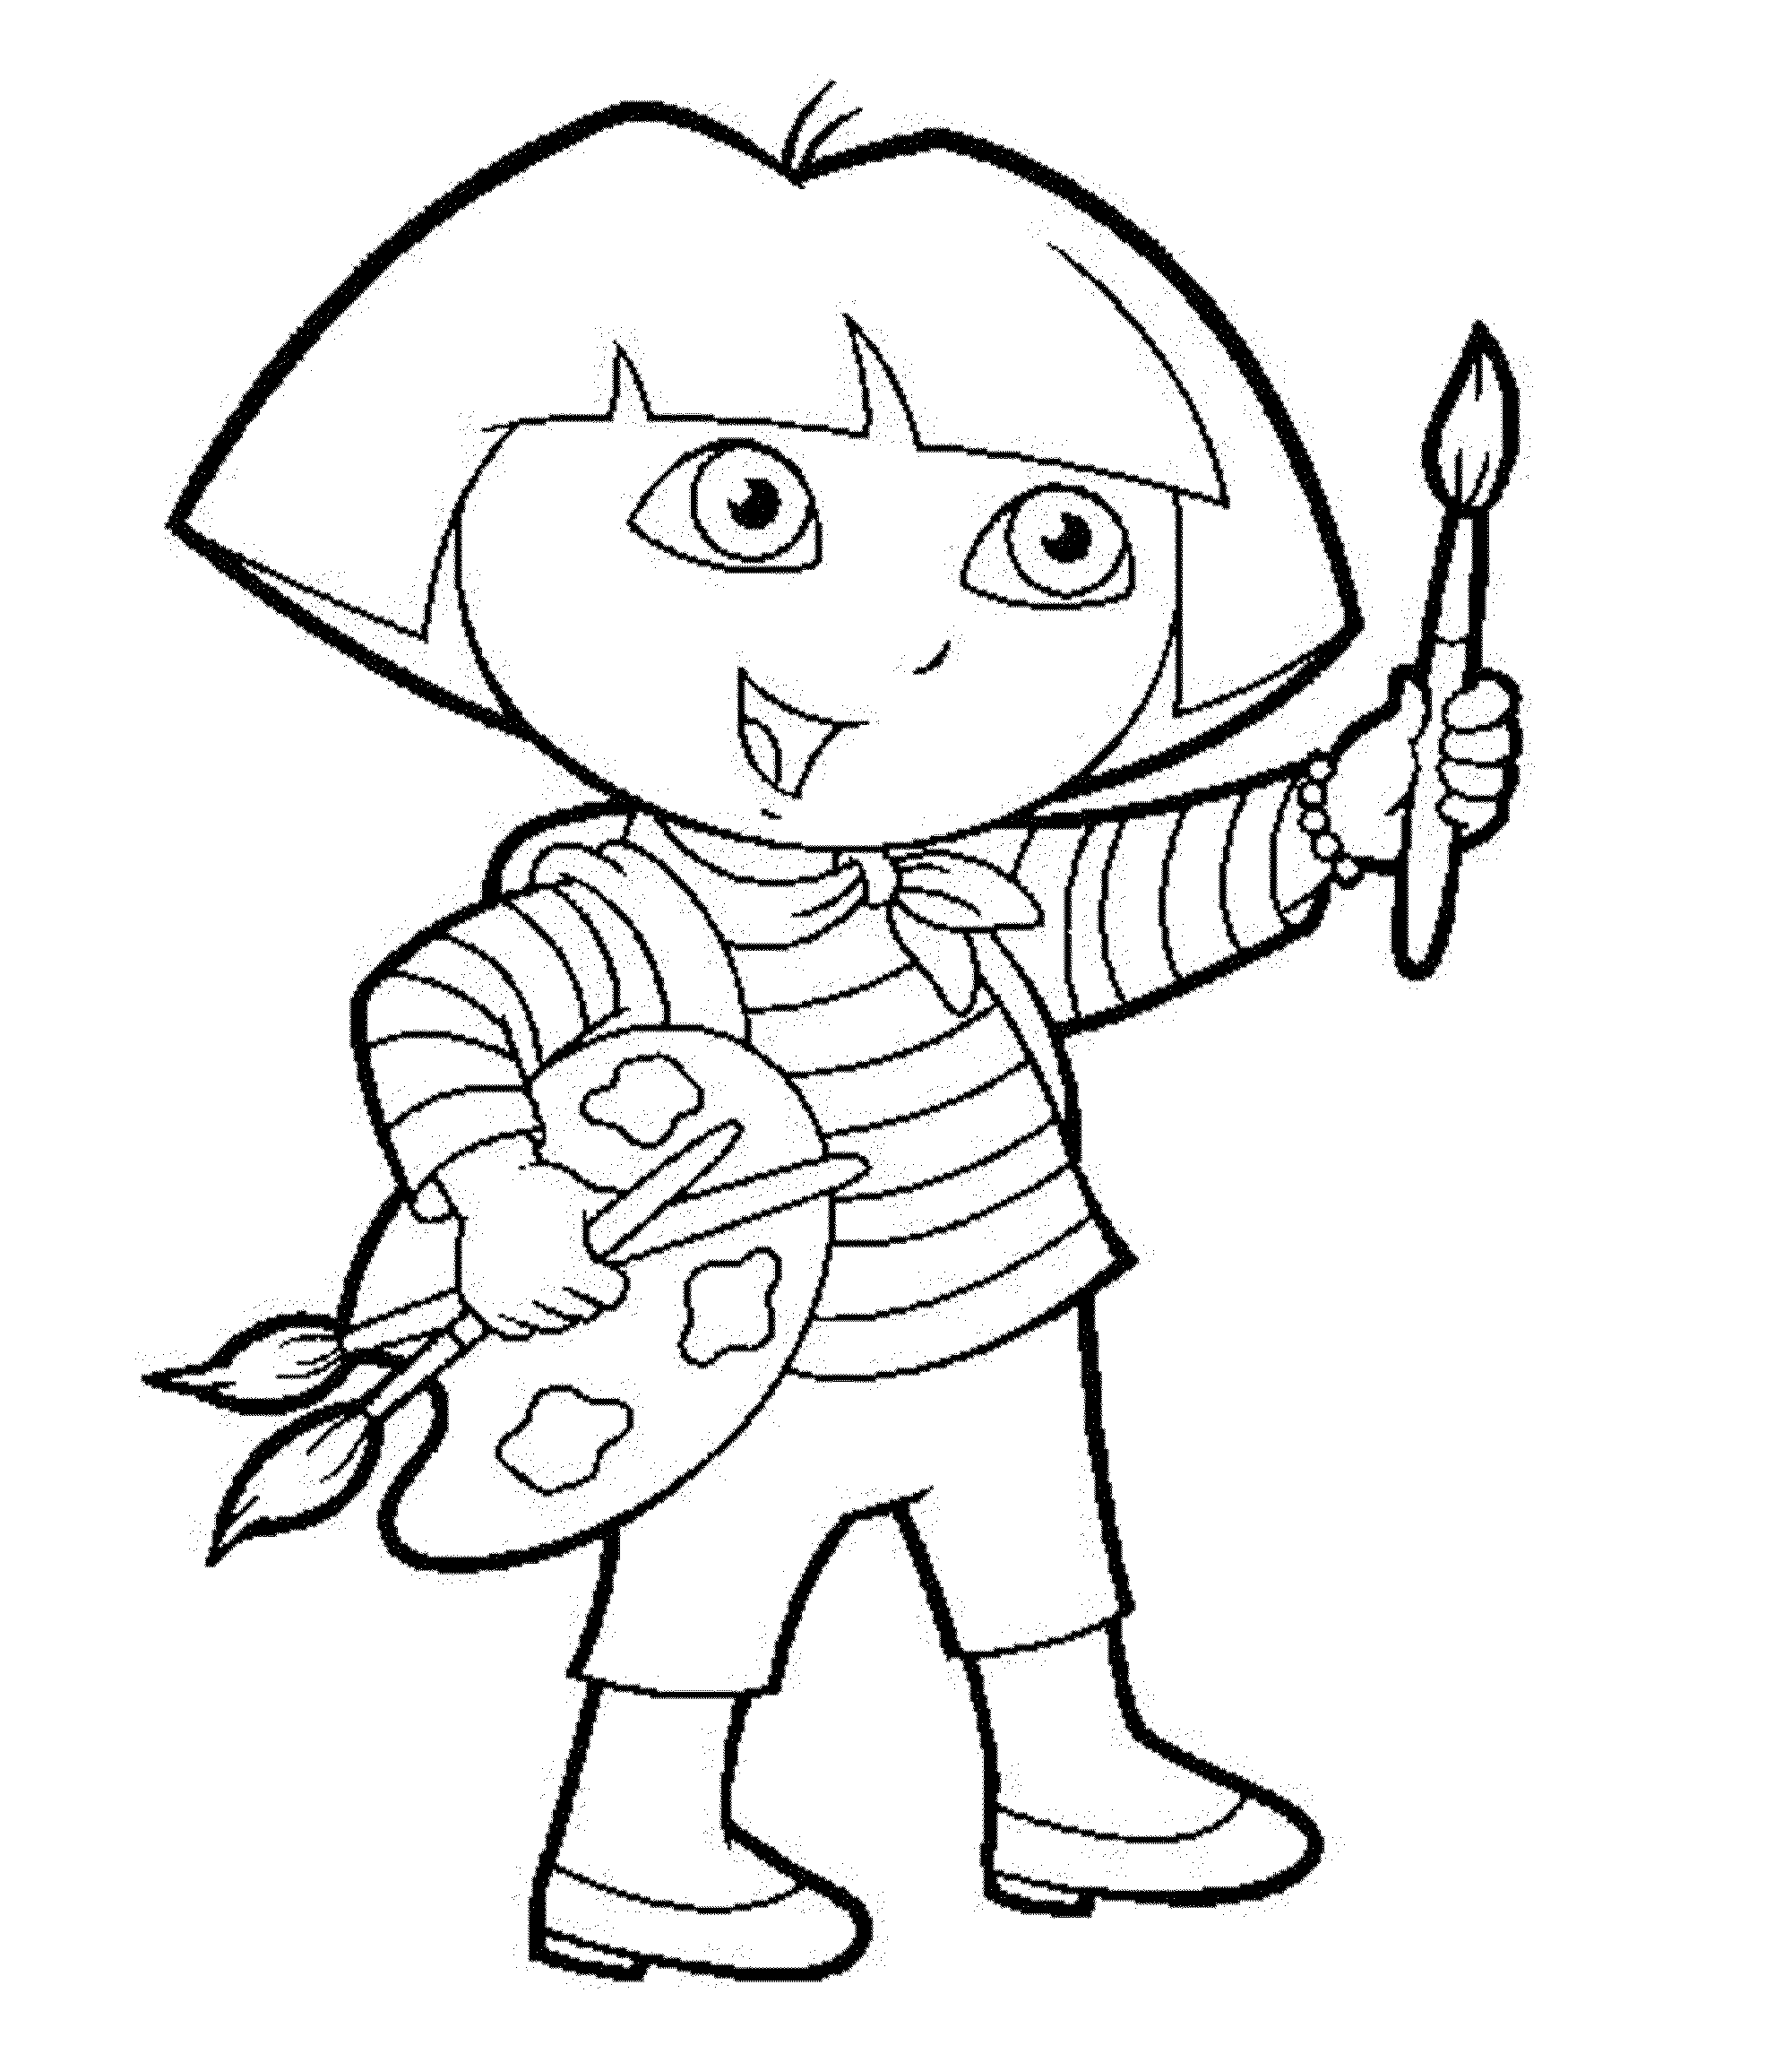 dora-coloring-pages-for-kids-printable-painting ...